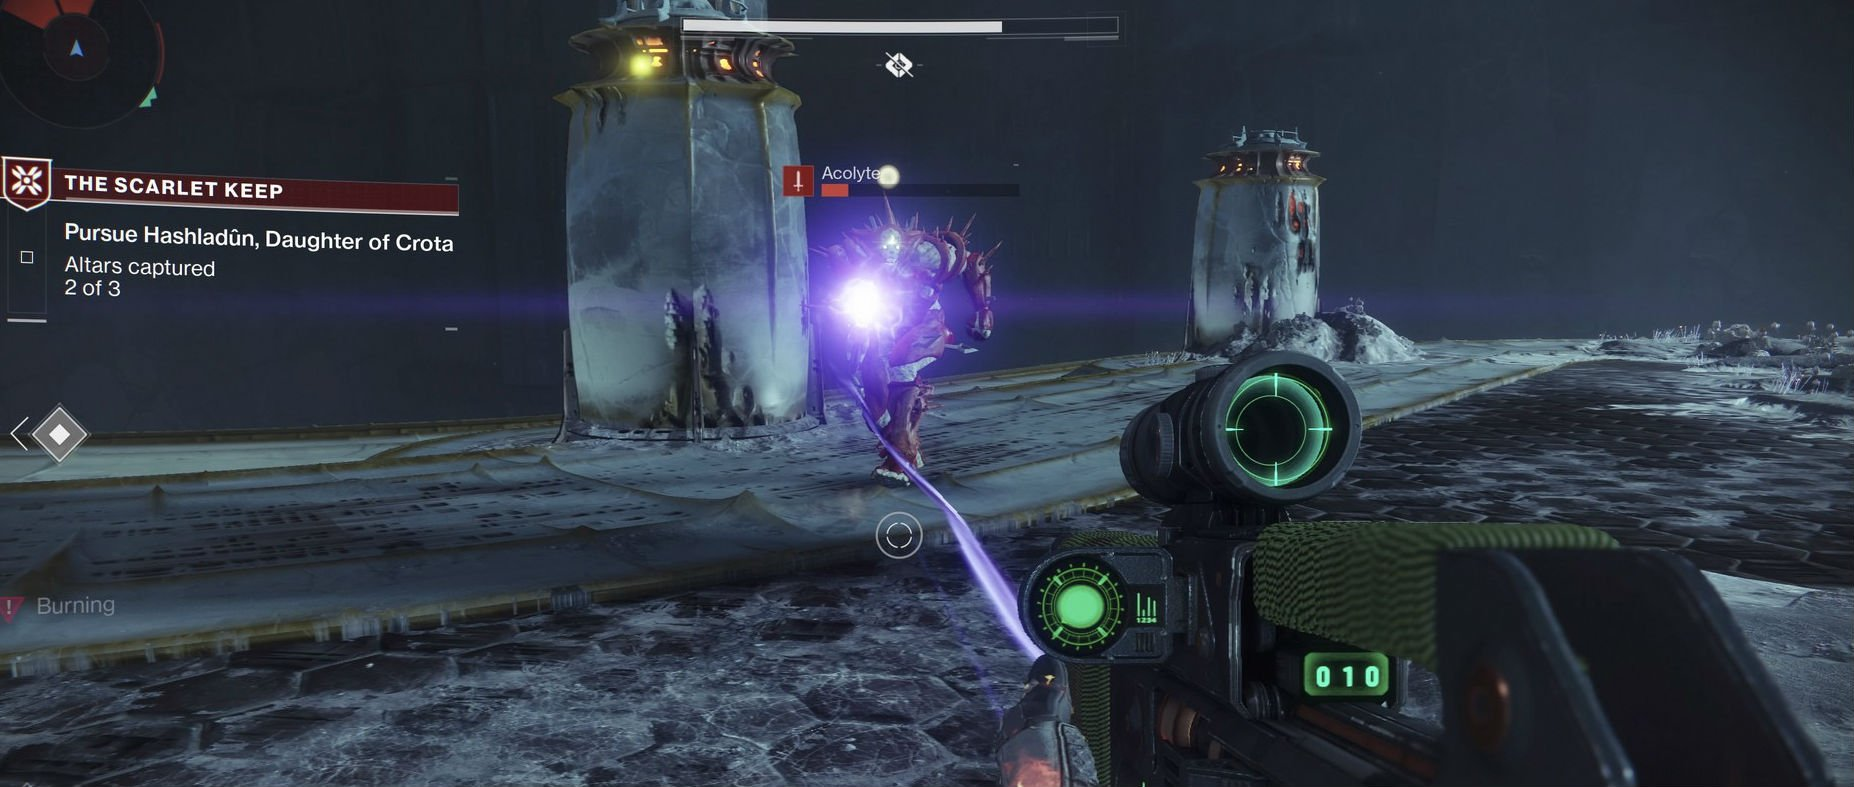 Destiny 2 guide: how to perform the new finisher moves screenshot